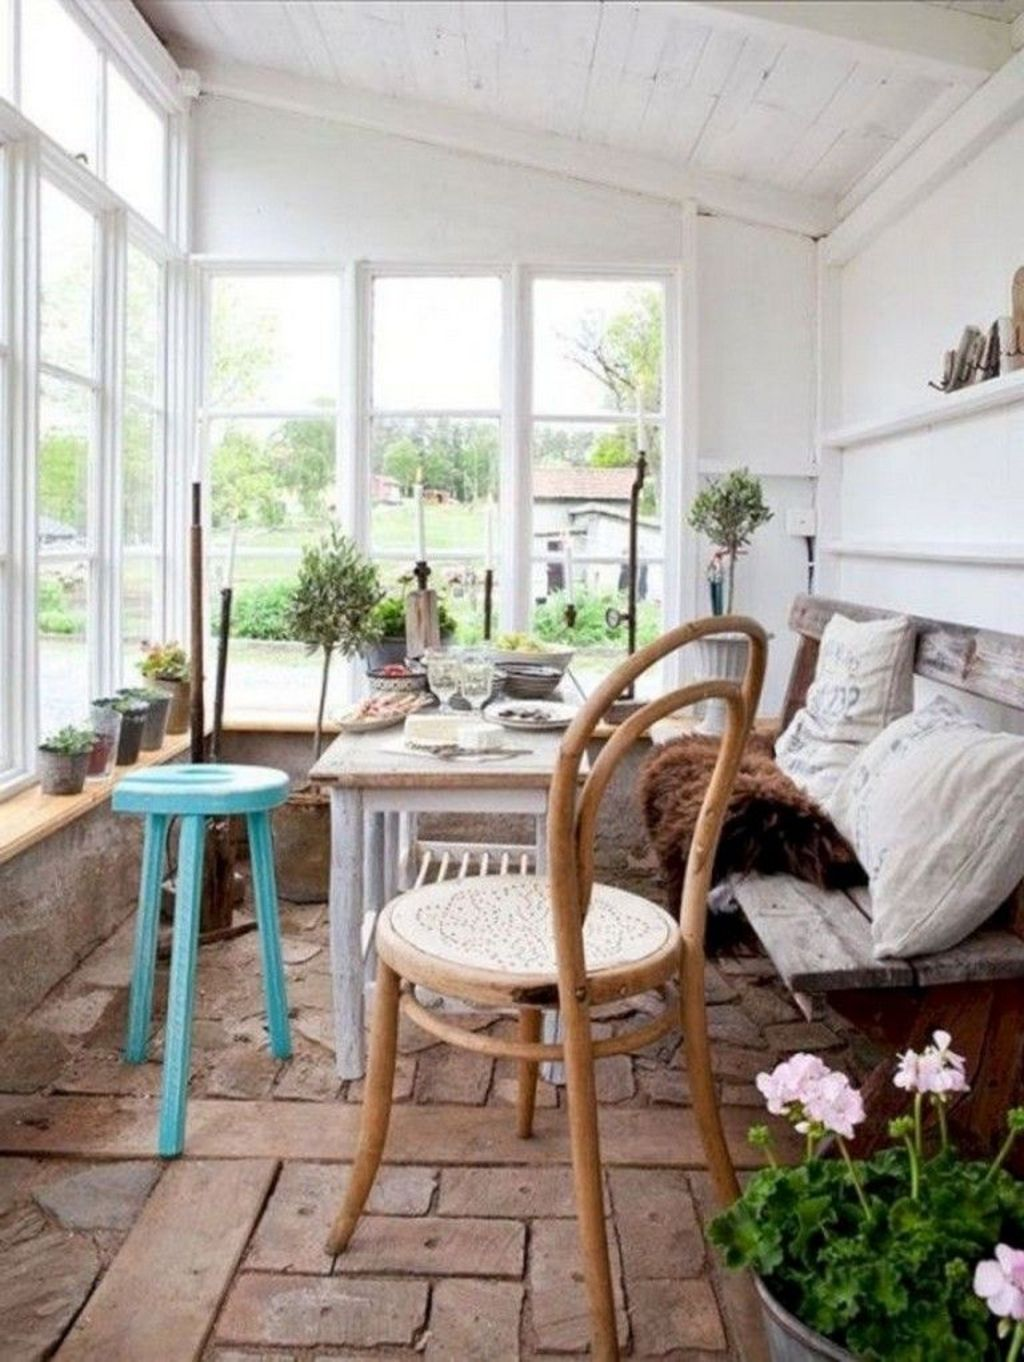 Most Popular Affordable Sunroom Design Ideas for 2019 Part 15